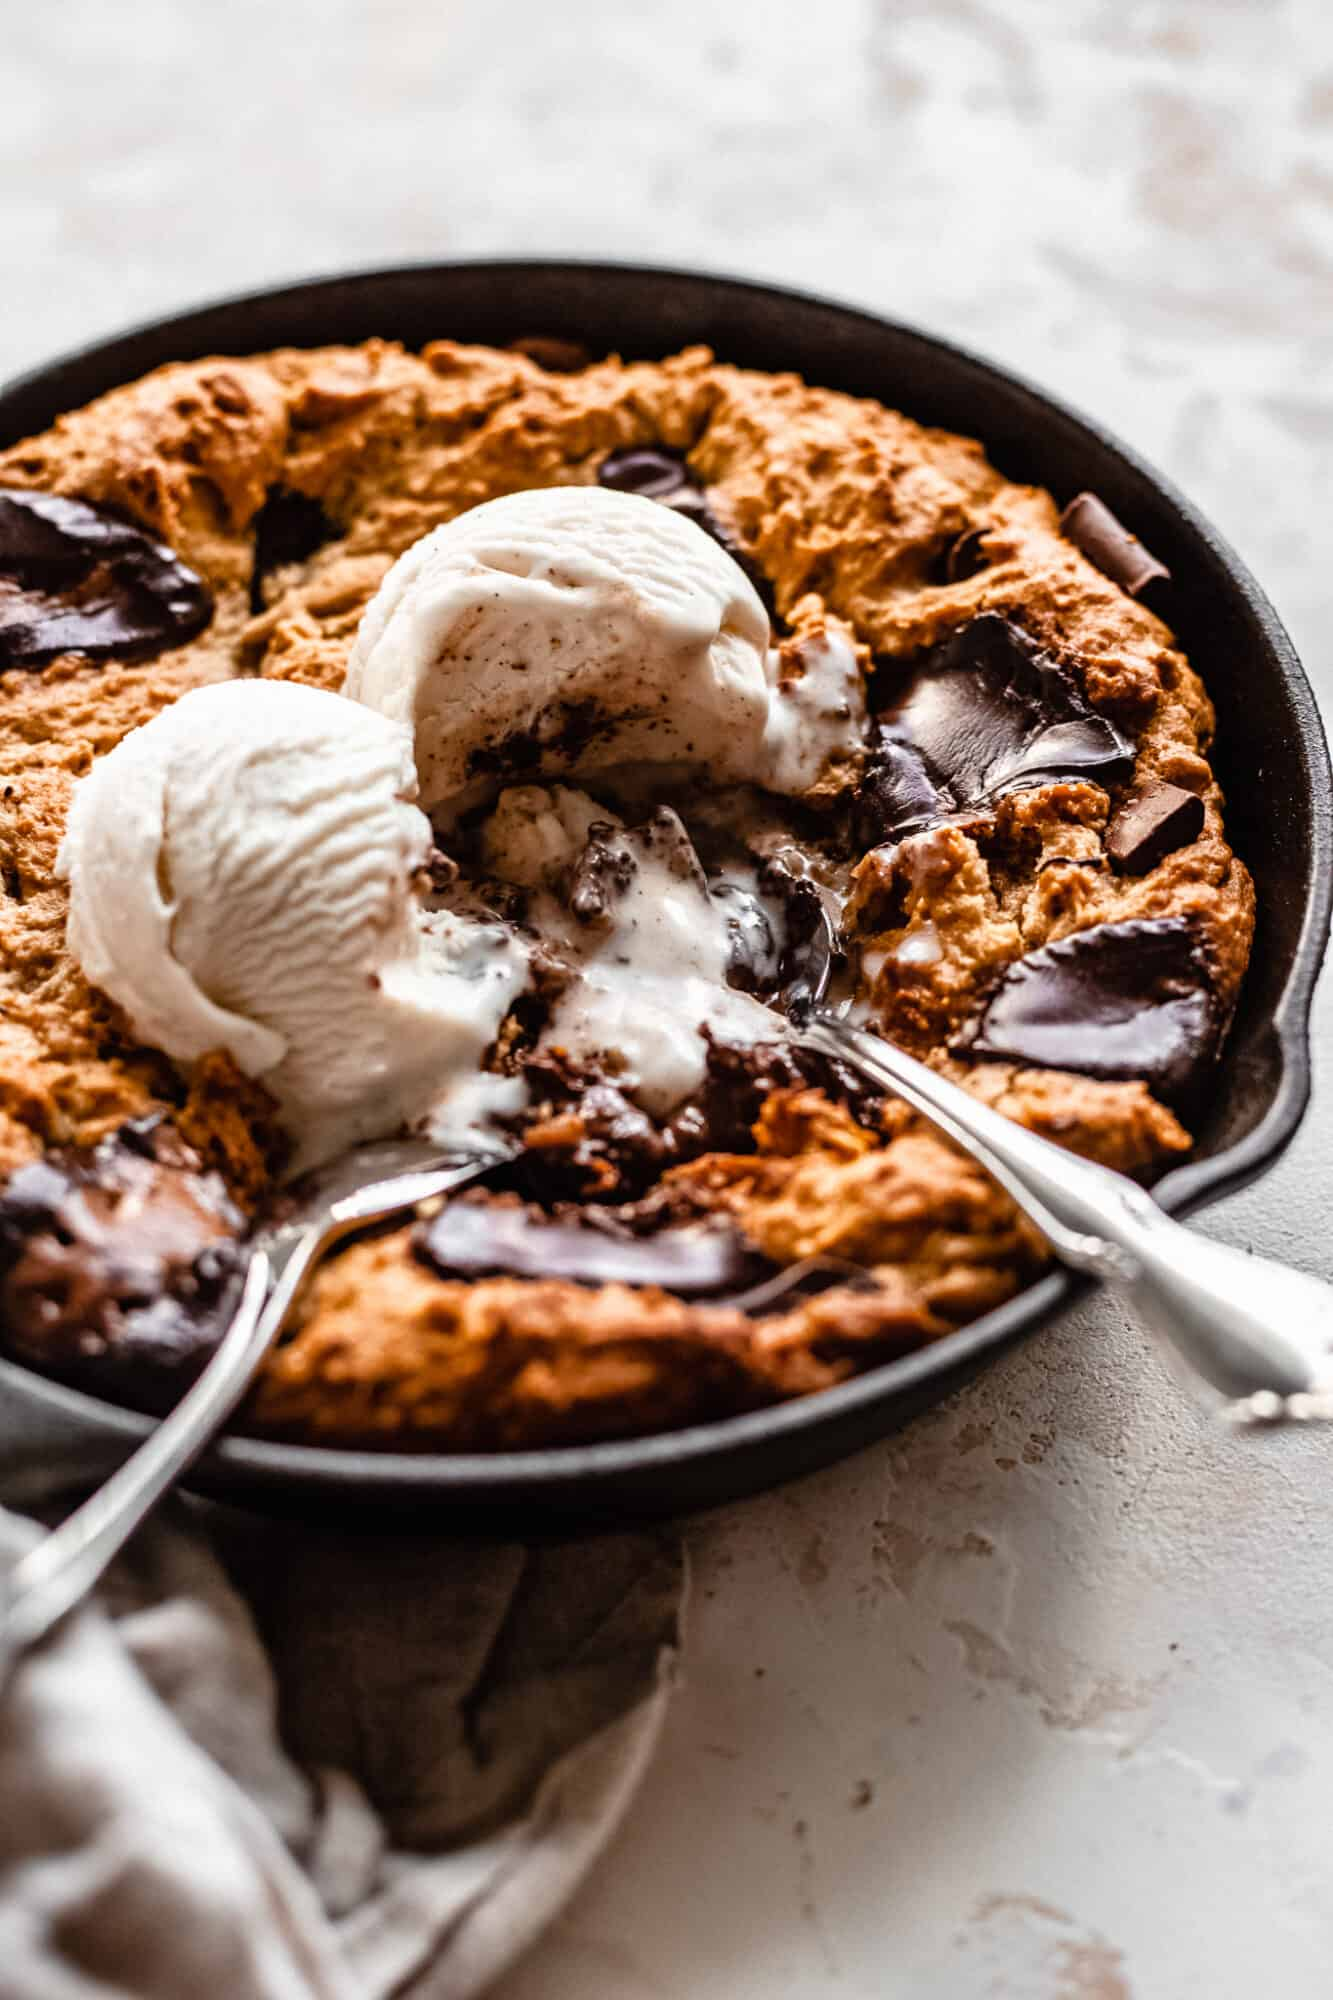 spoons eating melted ice cream on top of cookie skillet